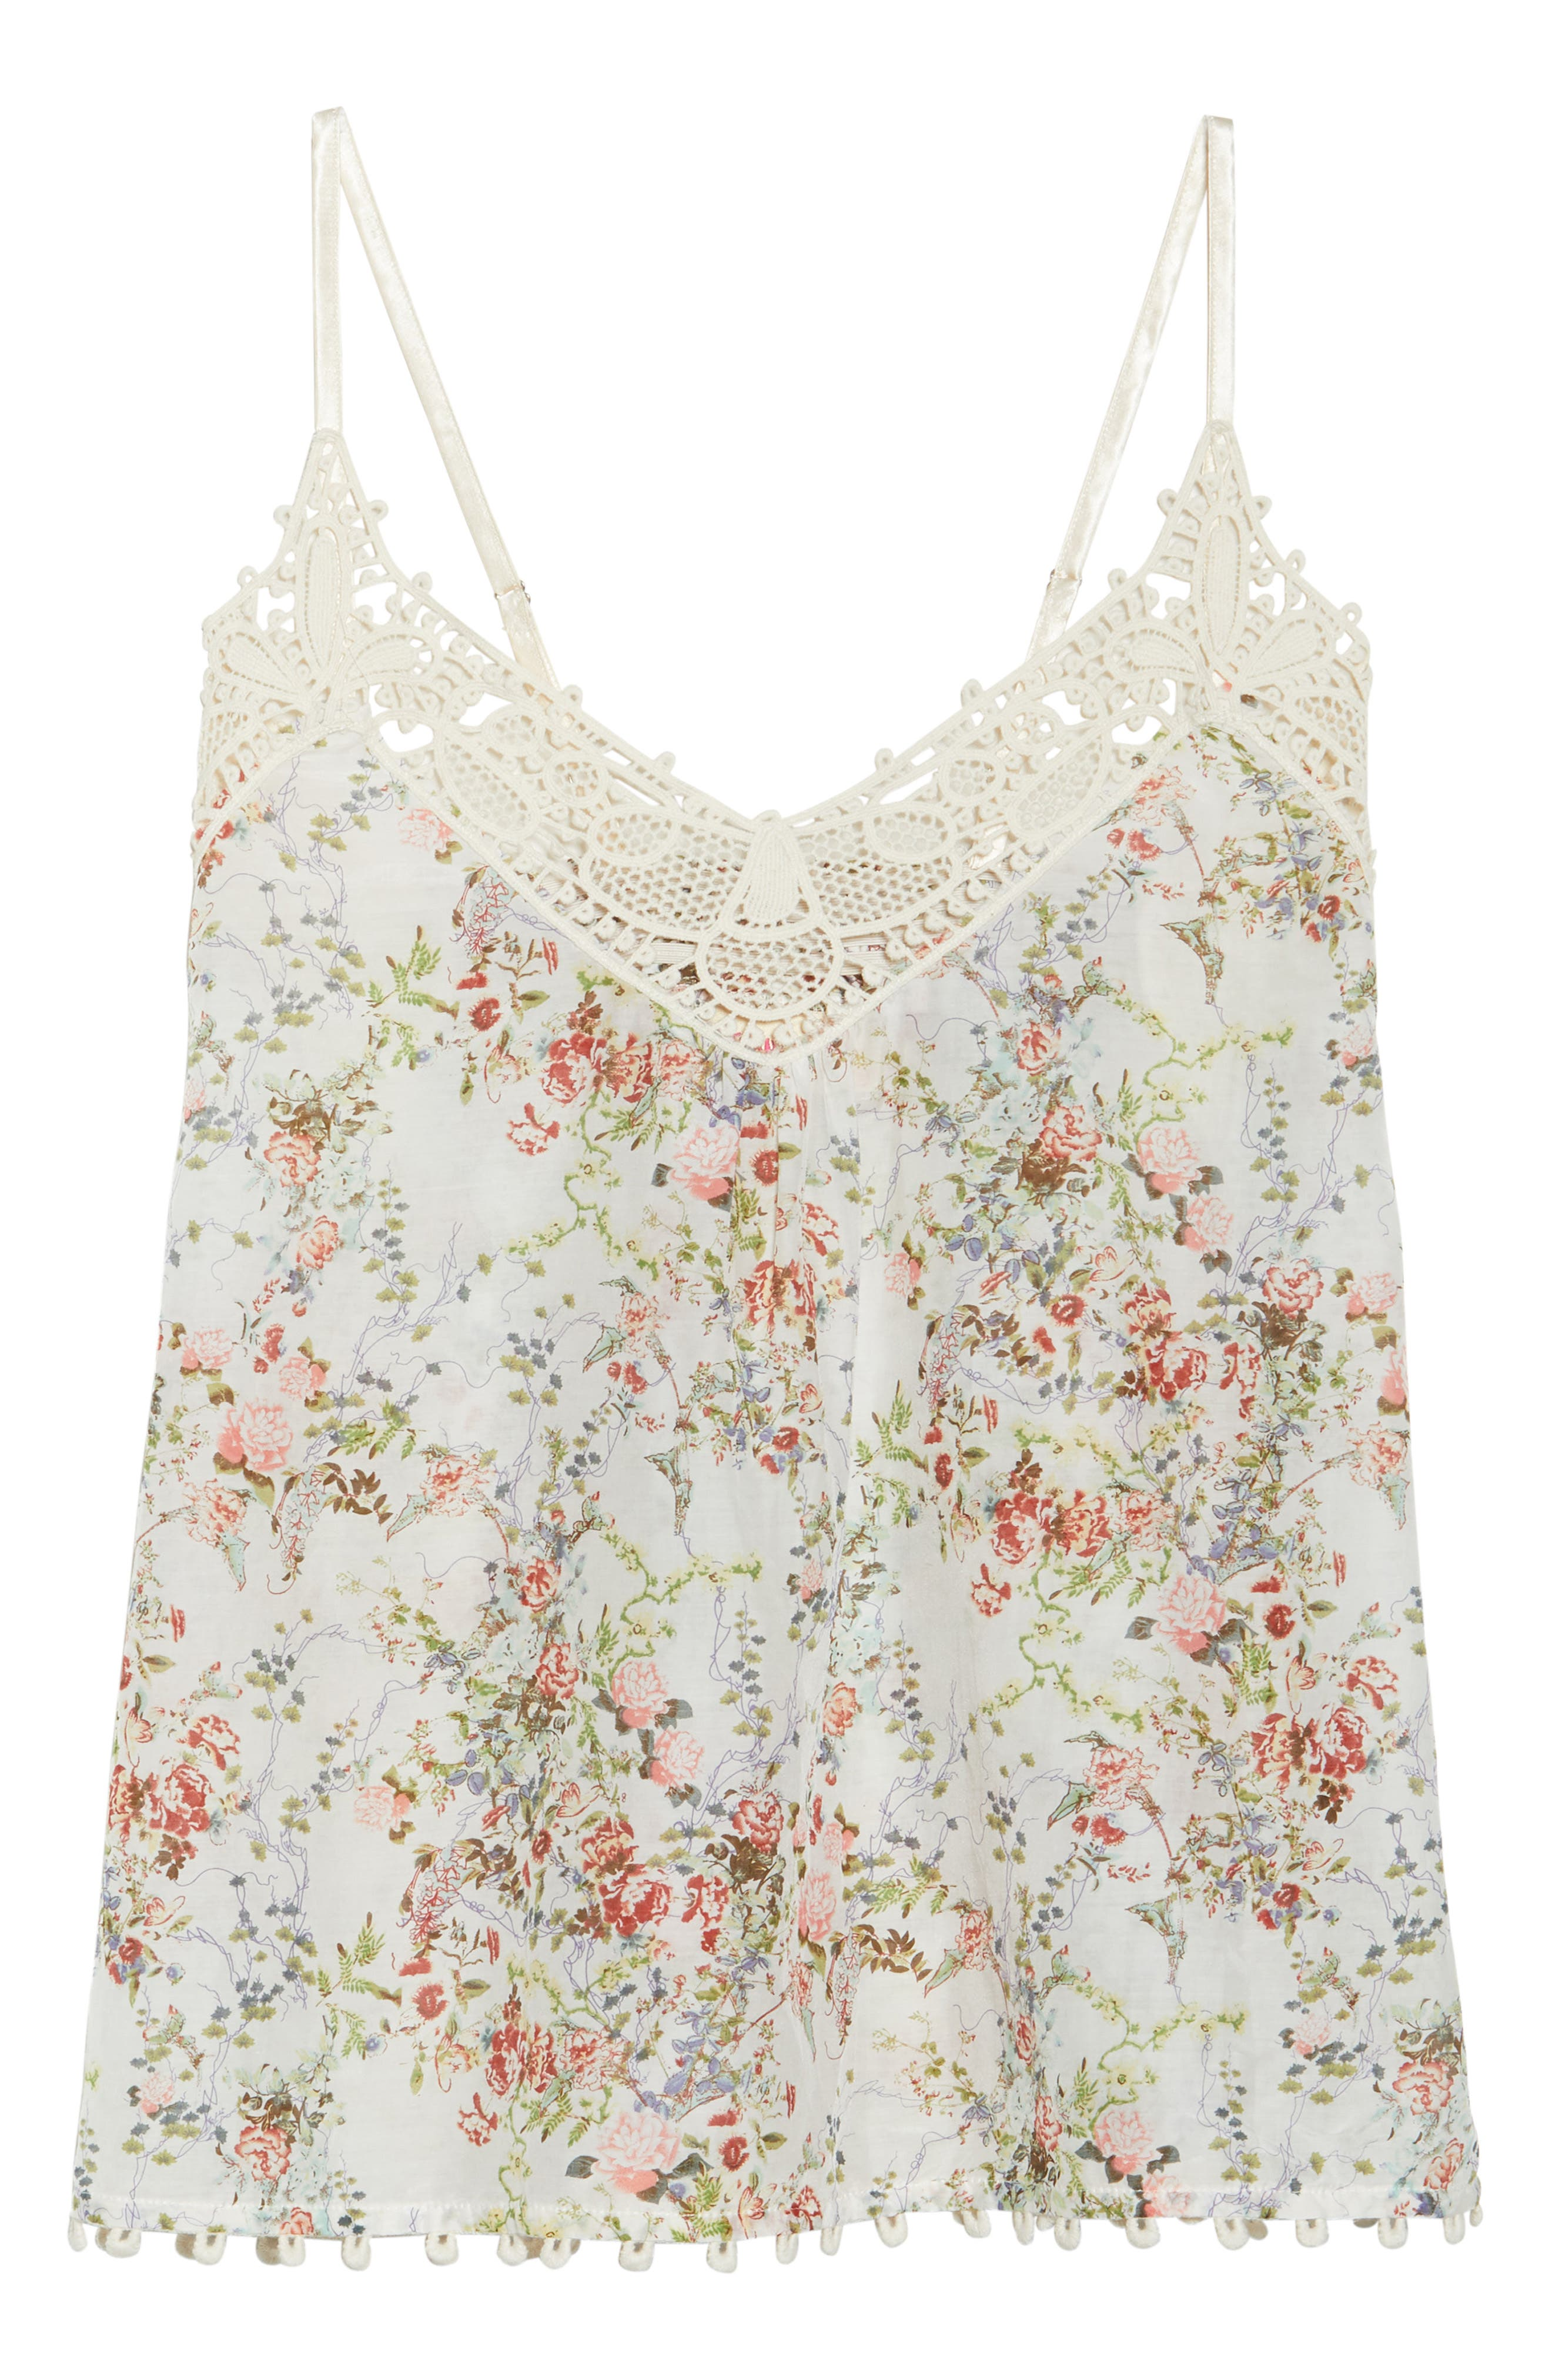 Yolly Camisole,                             Alternate thumbnail 6, color,                             IVORY FLORAL